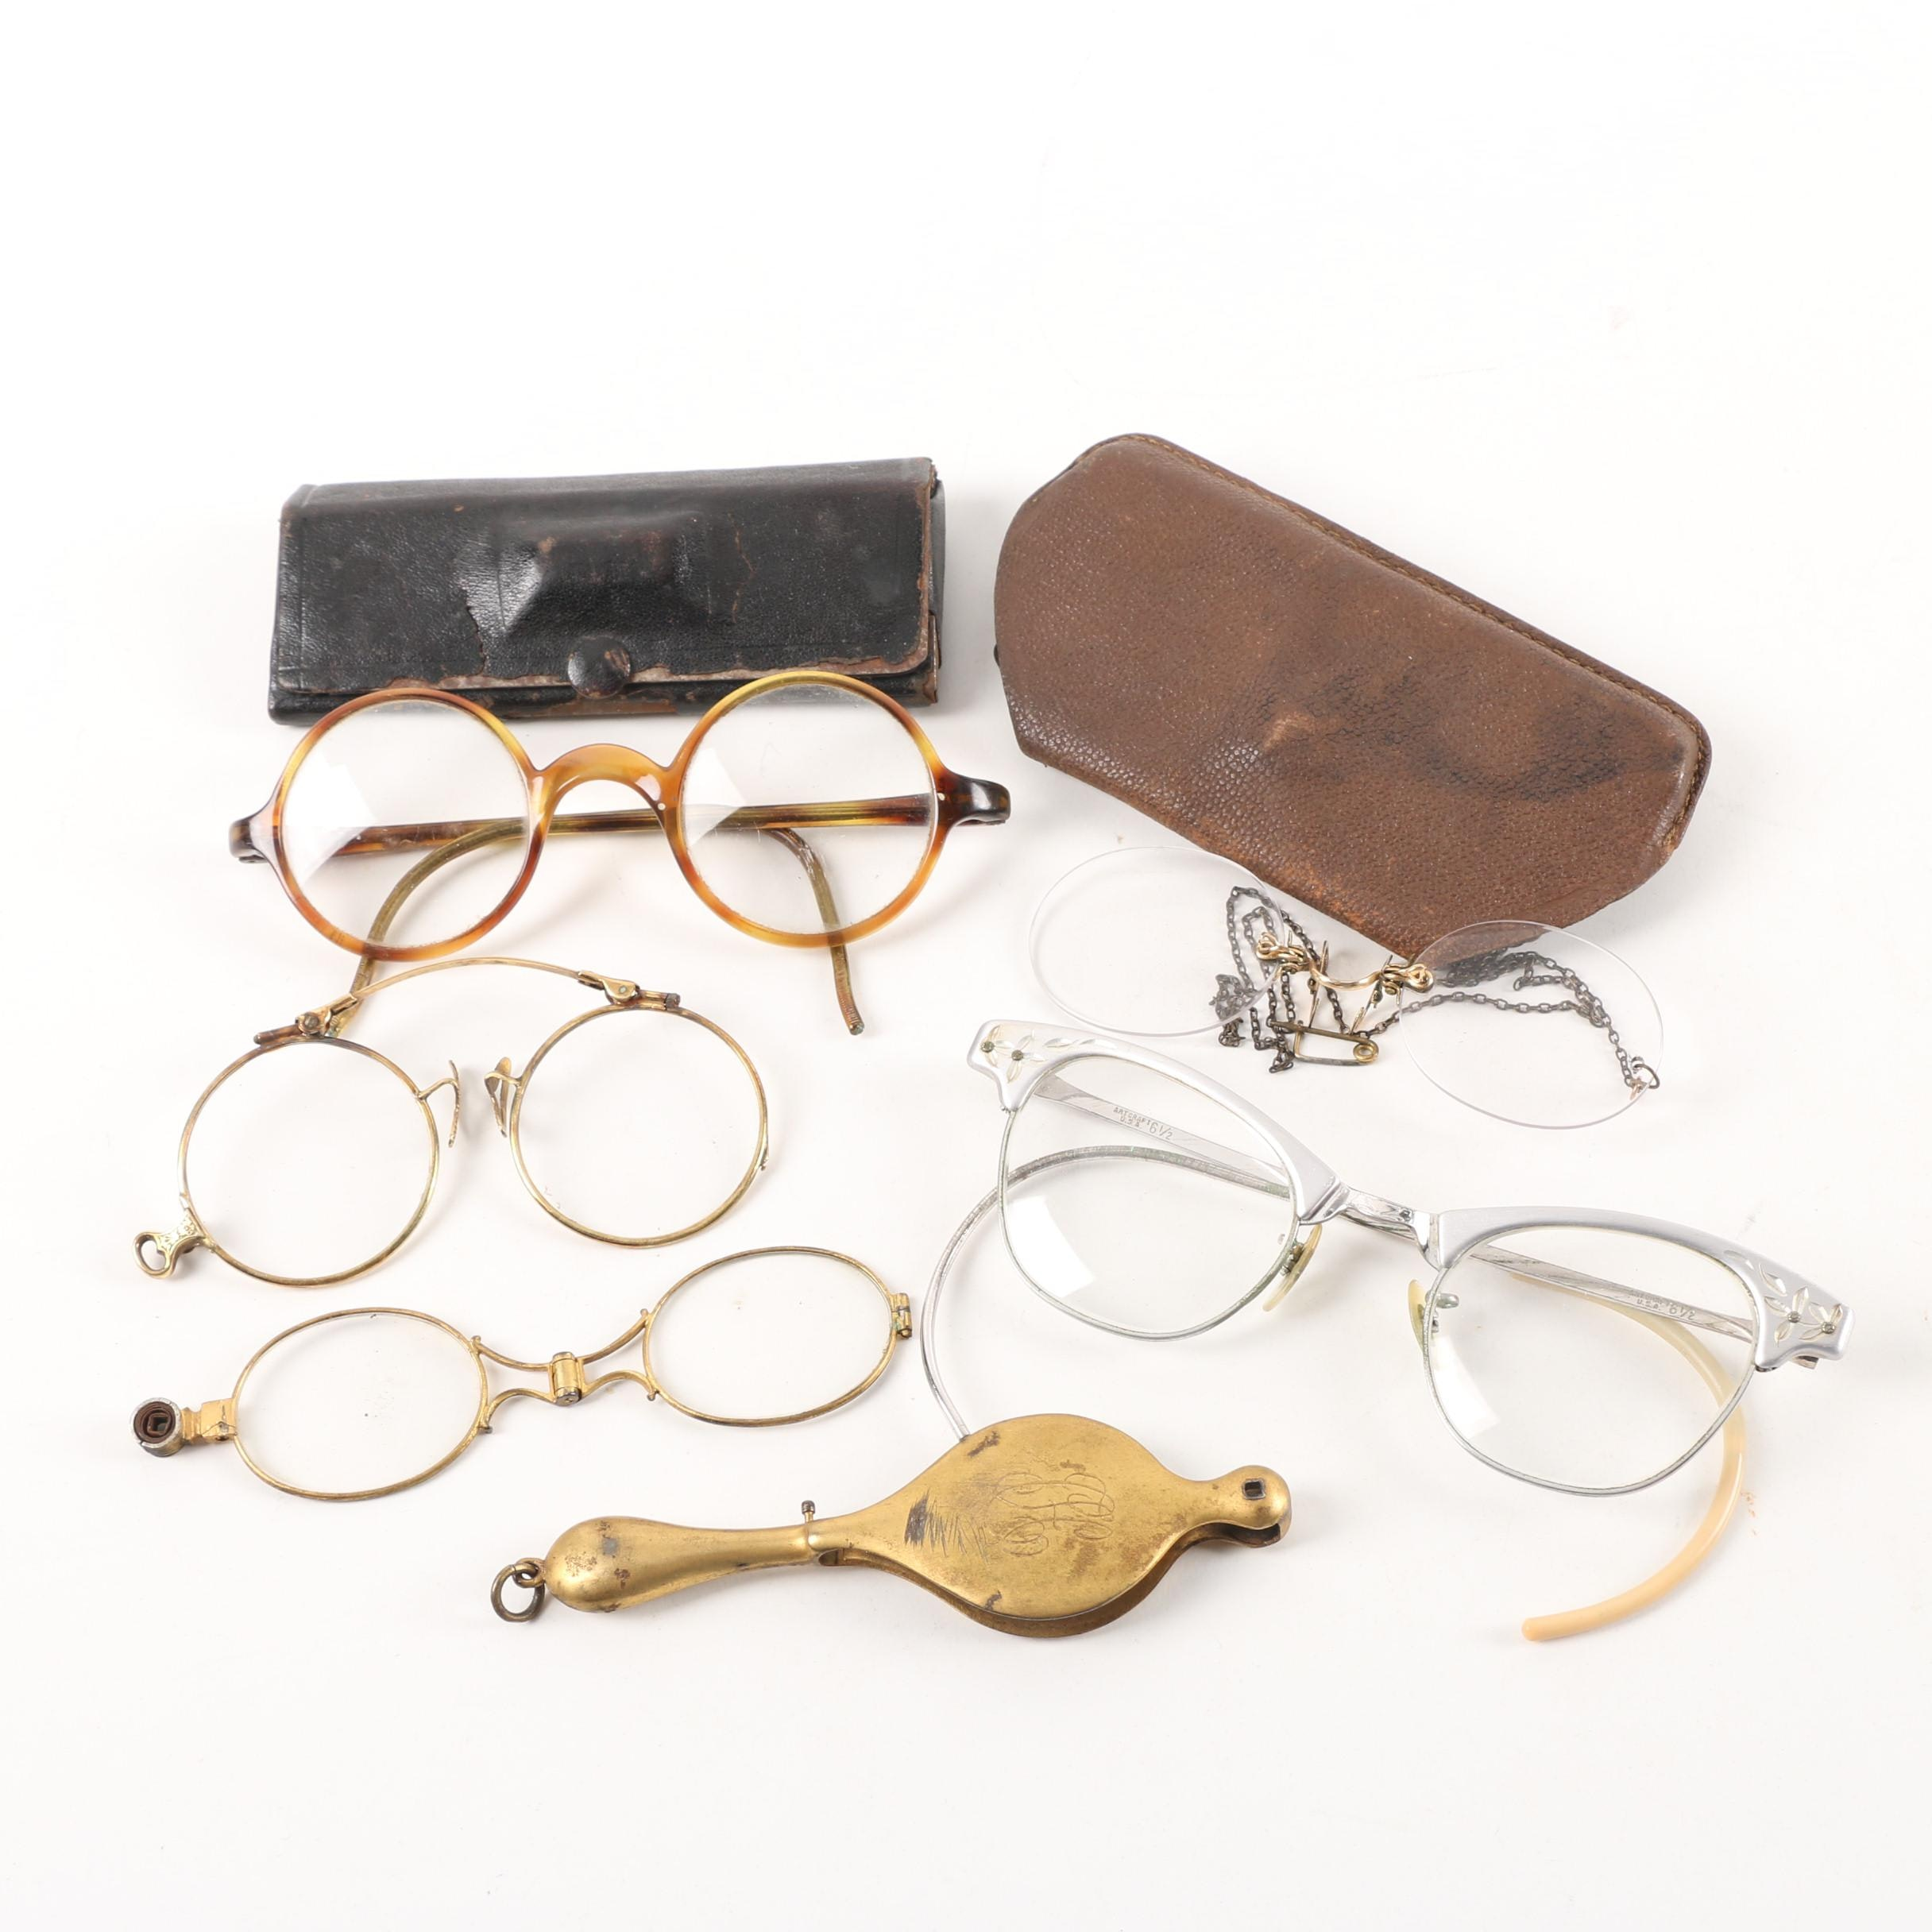 Antique and Vintage Eyeglasses and Leather Cases